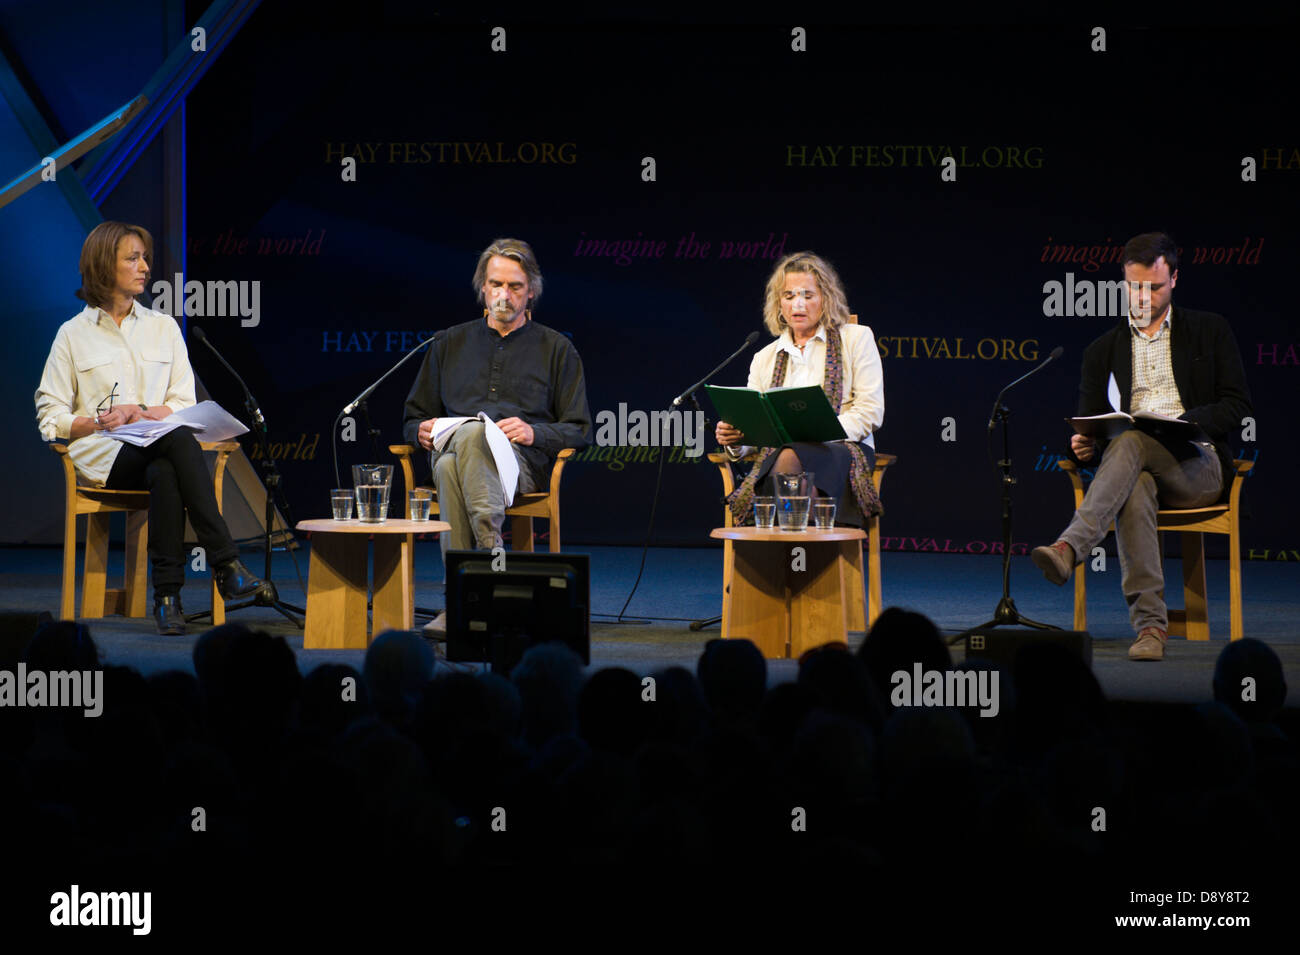 Actors reading poetry of The Great War on stage at Hay Festival 2013 Hay on Wye Powys Wales UK - Stock Image